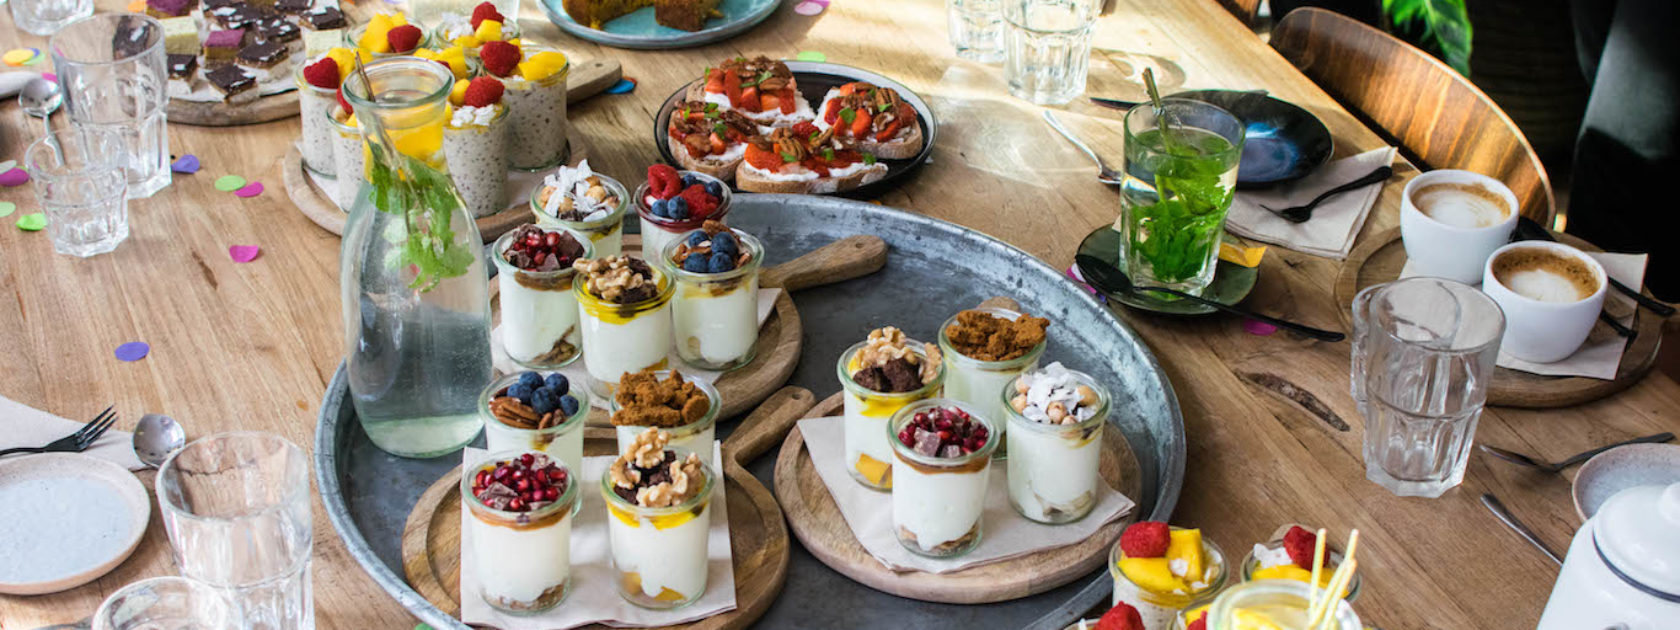 Yoghurt Barn in Rotterdam is the best place to get your yoghurt fix! It's a wonderful place for high tea, breakfast and for a meet-up with some friends.